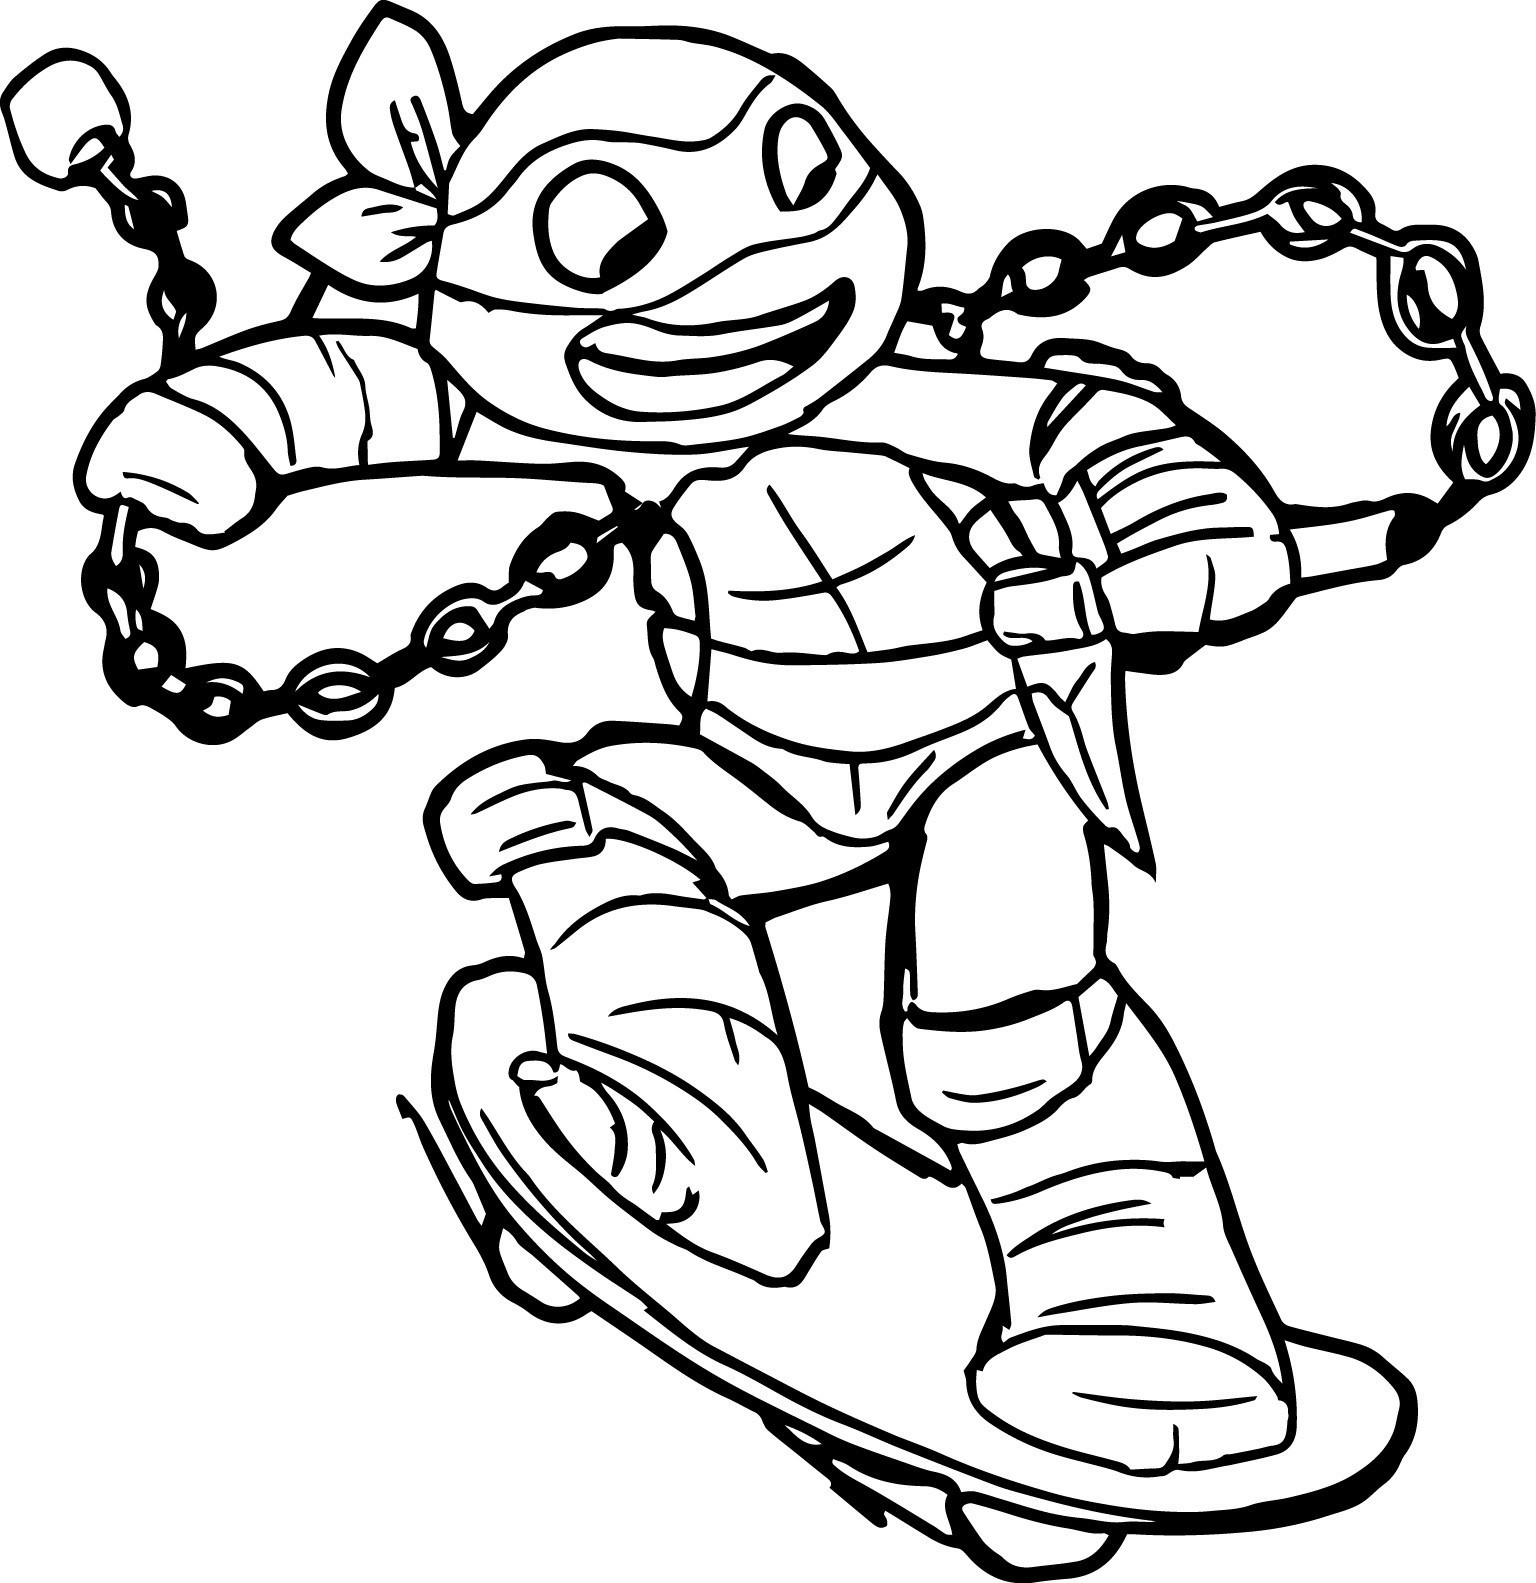 free ninja turtle coloring pages - photo#2